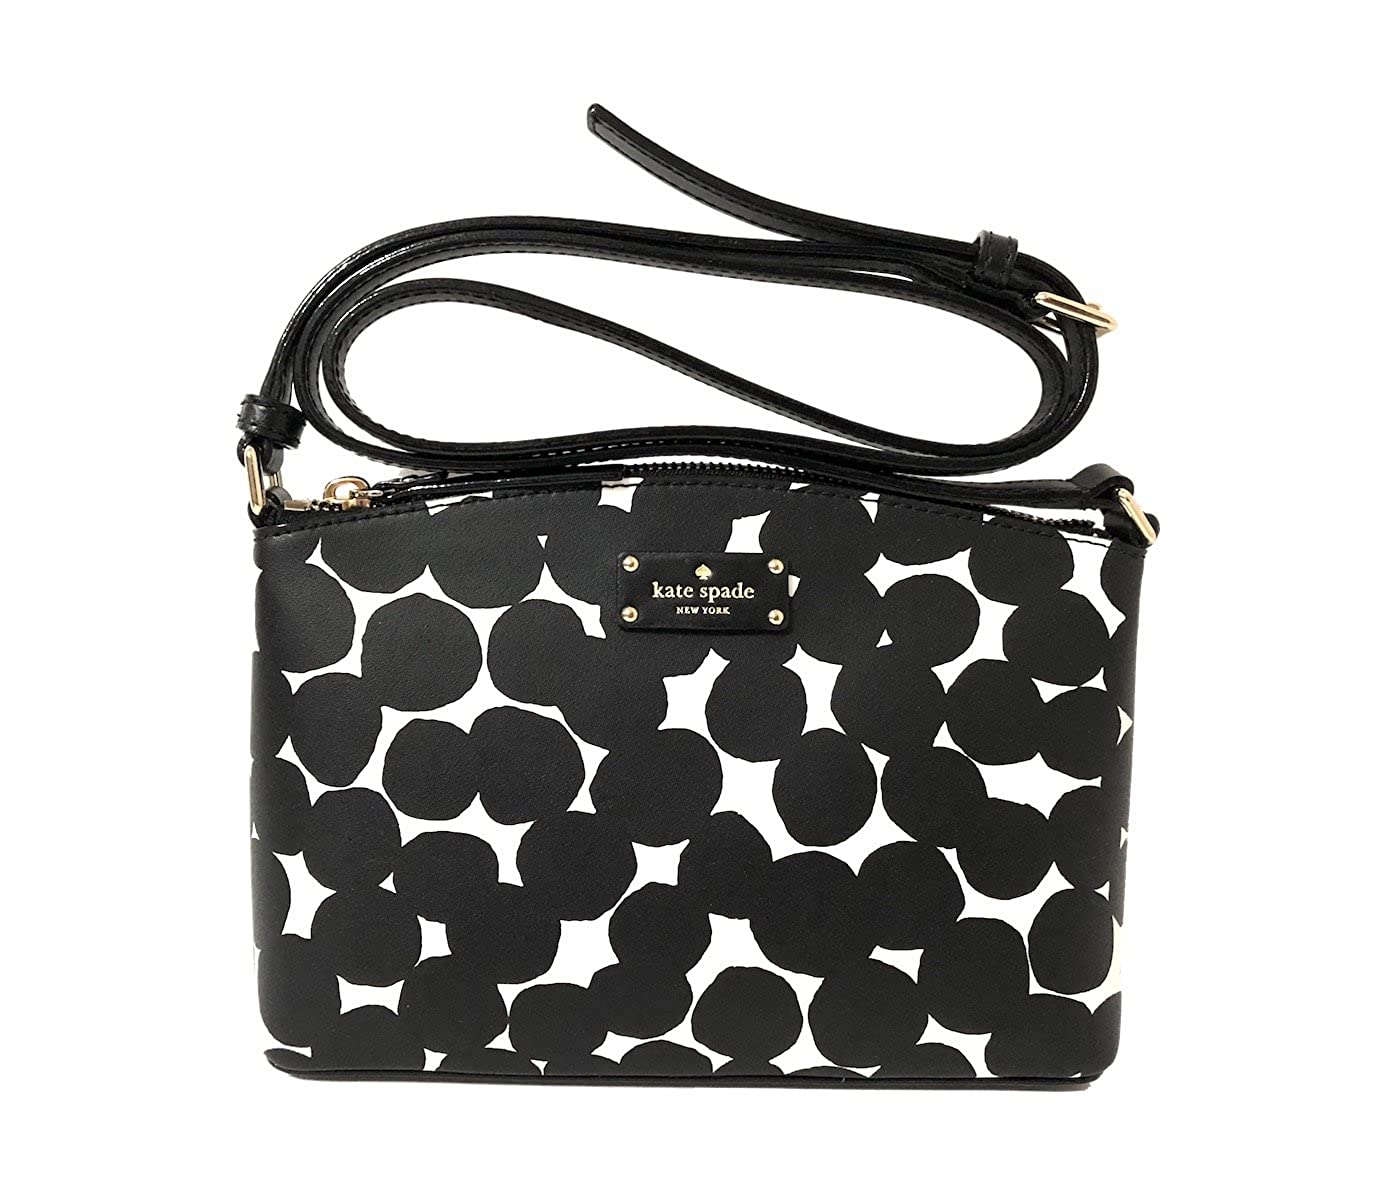 Kate Spade New York Grove Street Millie Leather Shoulder Handbag Purse (Black/Cream)